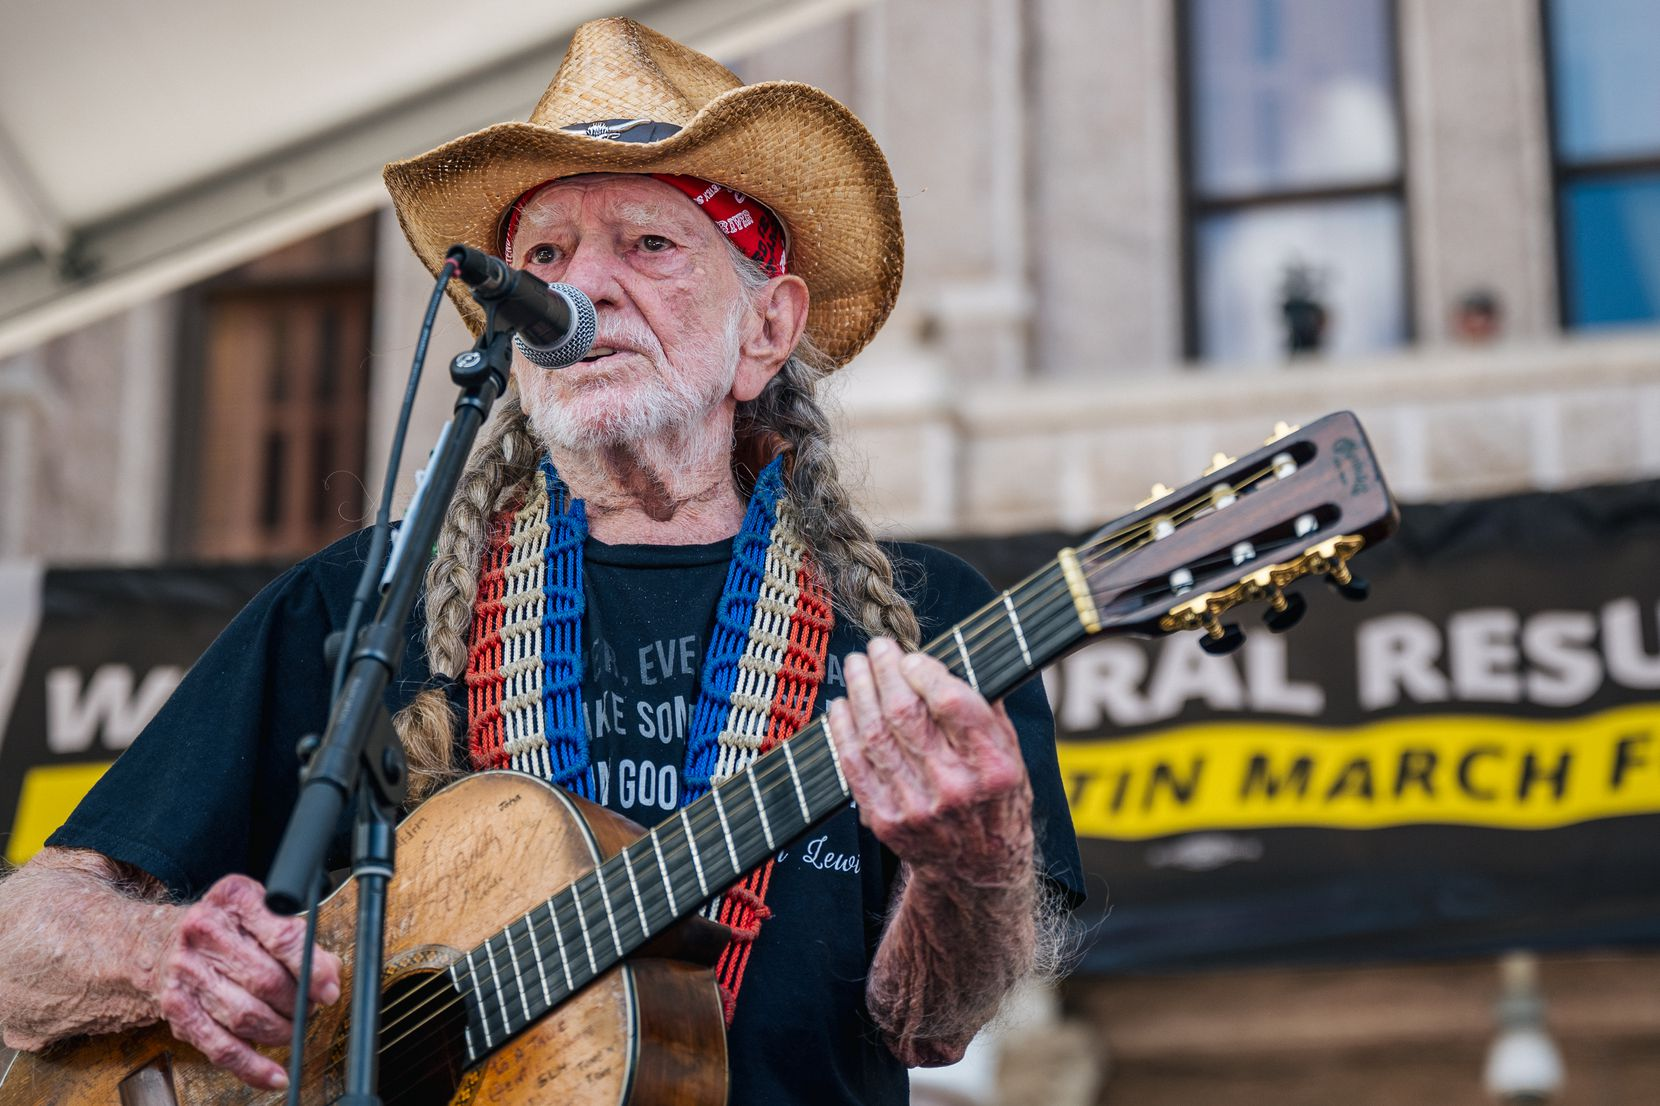 Musician Willie Nelson performed during the Georgetown to Austin March for Democracy rally on July 31, 2021 in Austin, Texas. Texas activists and demonstrators rallied at the Texas state Capitol after completing a 27-mile long march from Georgetown to Austin, demanding federal action on voting rights legislation. (Brandon Bell/Getty Images)